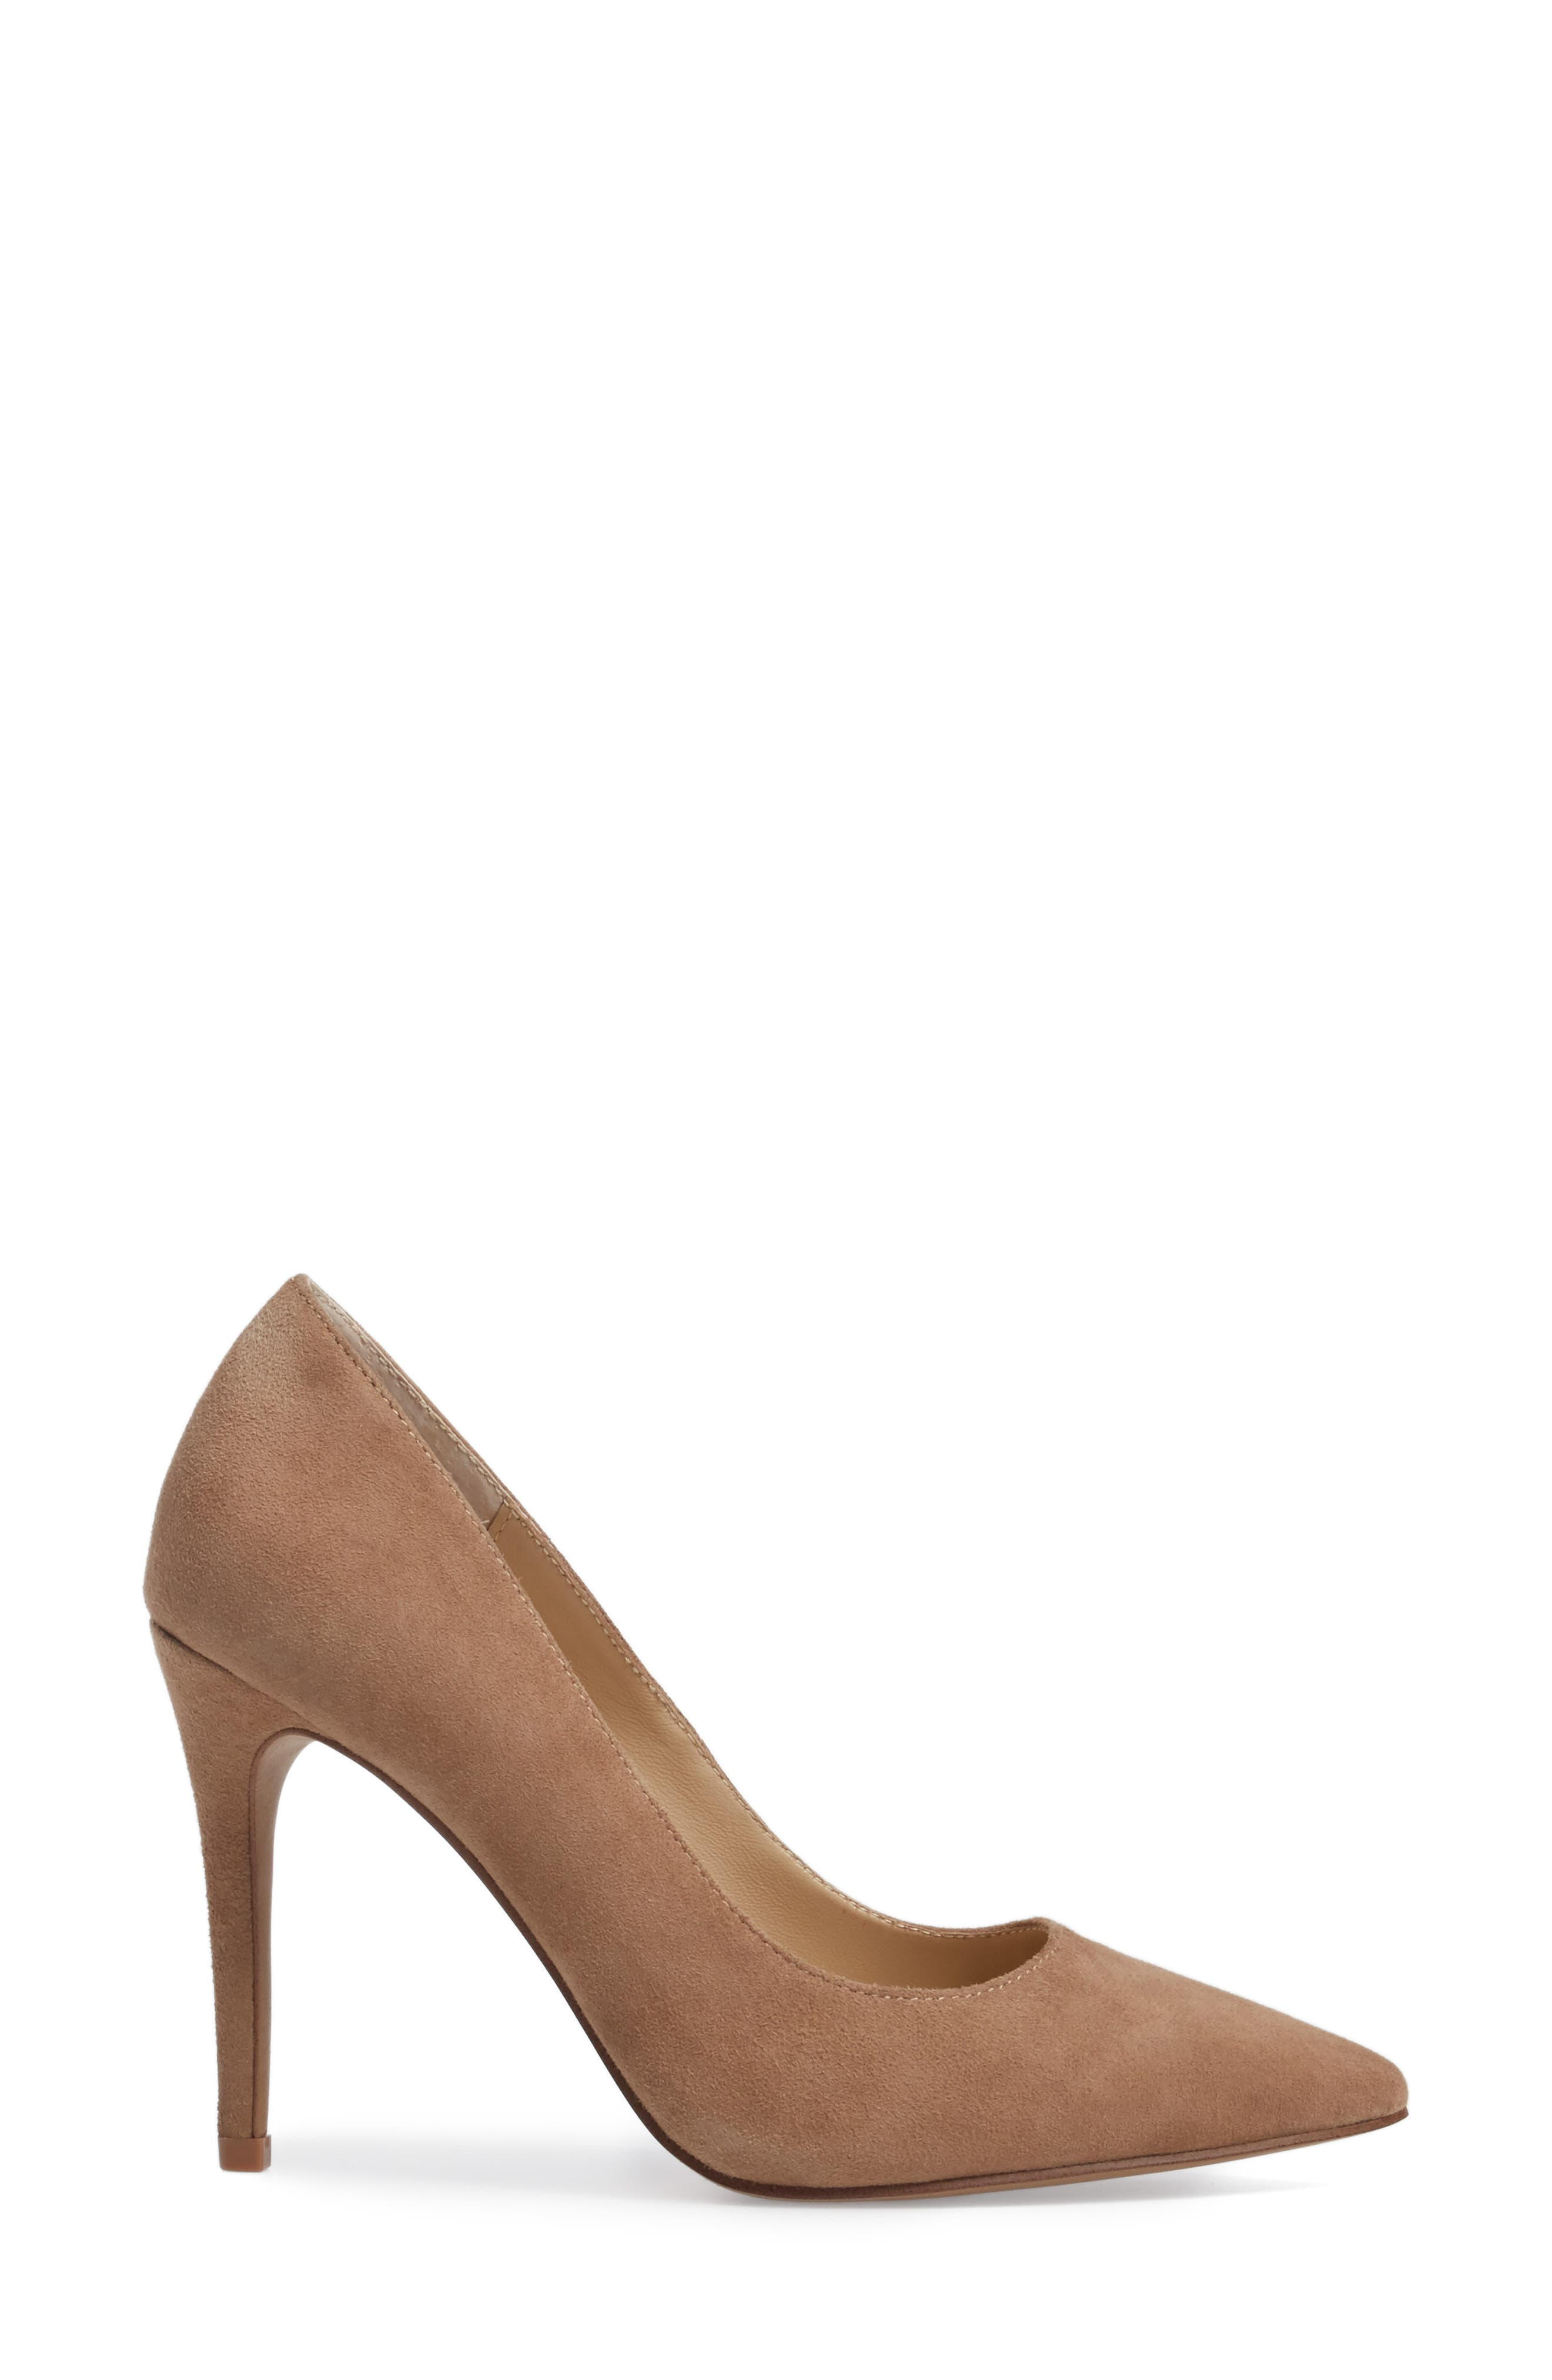 Gisele Pointy Toe Pump,                             Alternate thumbnail 3, color,                             Clay Suede